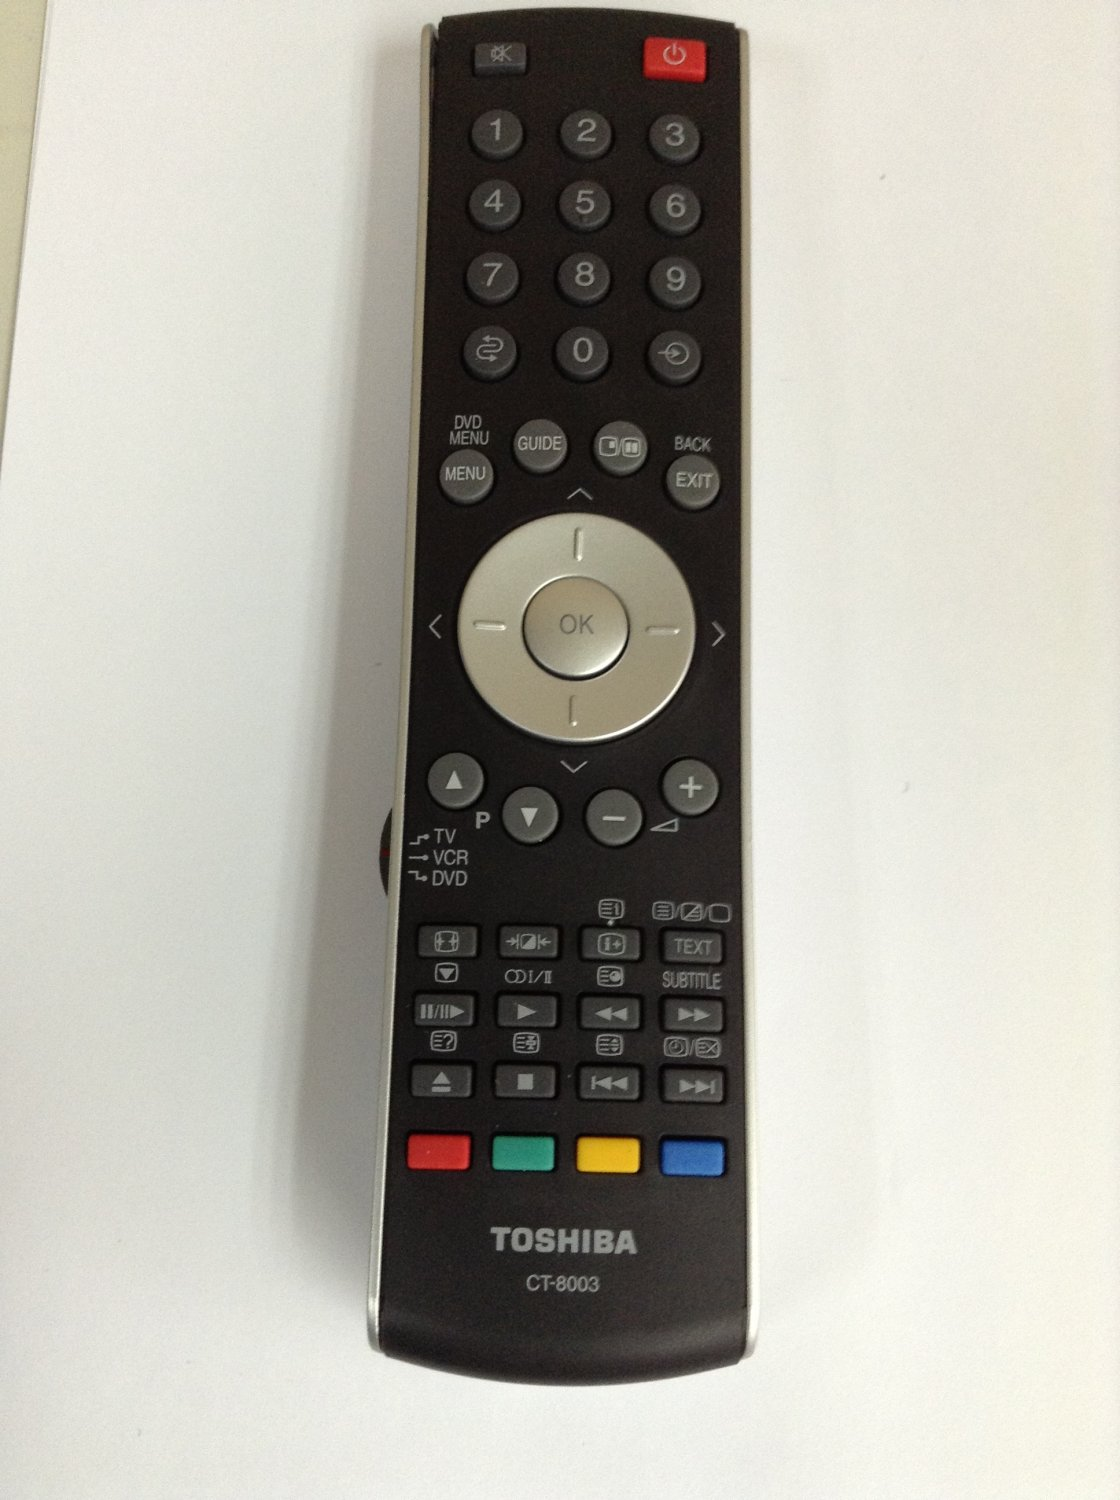 REMOTE CONTROL FOR TOSHIBA TV CT-90353 CT-90354 CT-90276 CT-90257